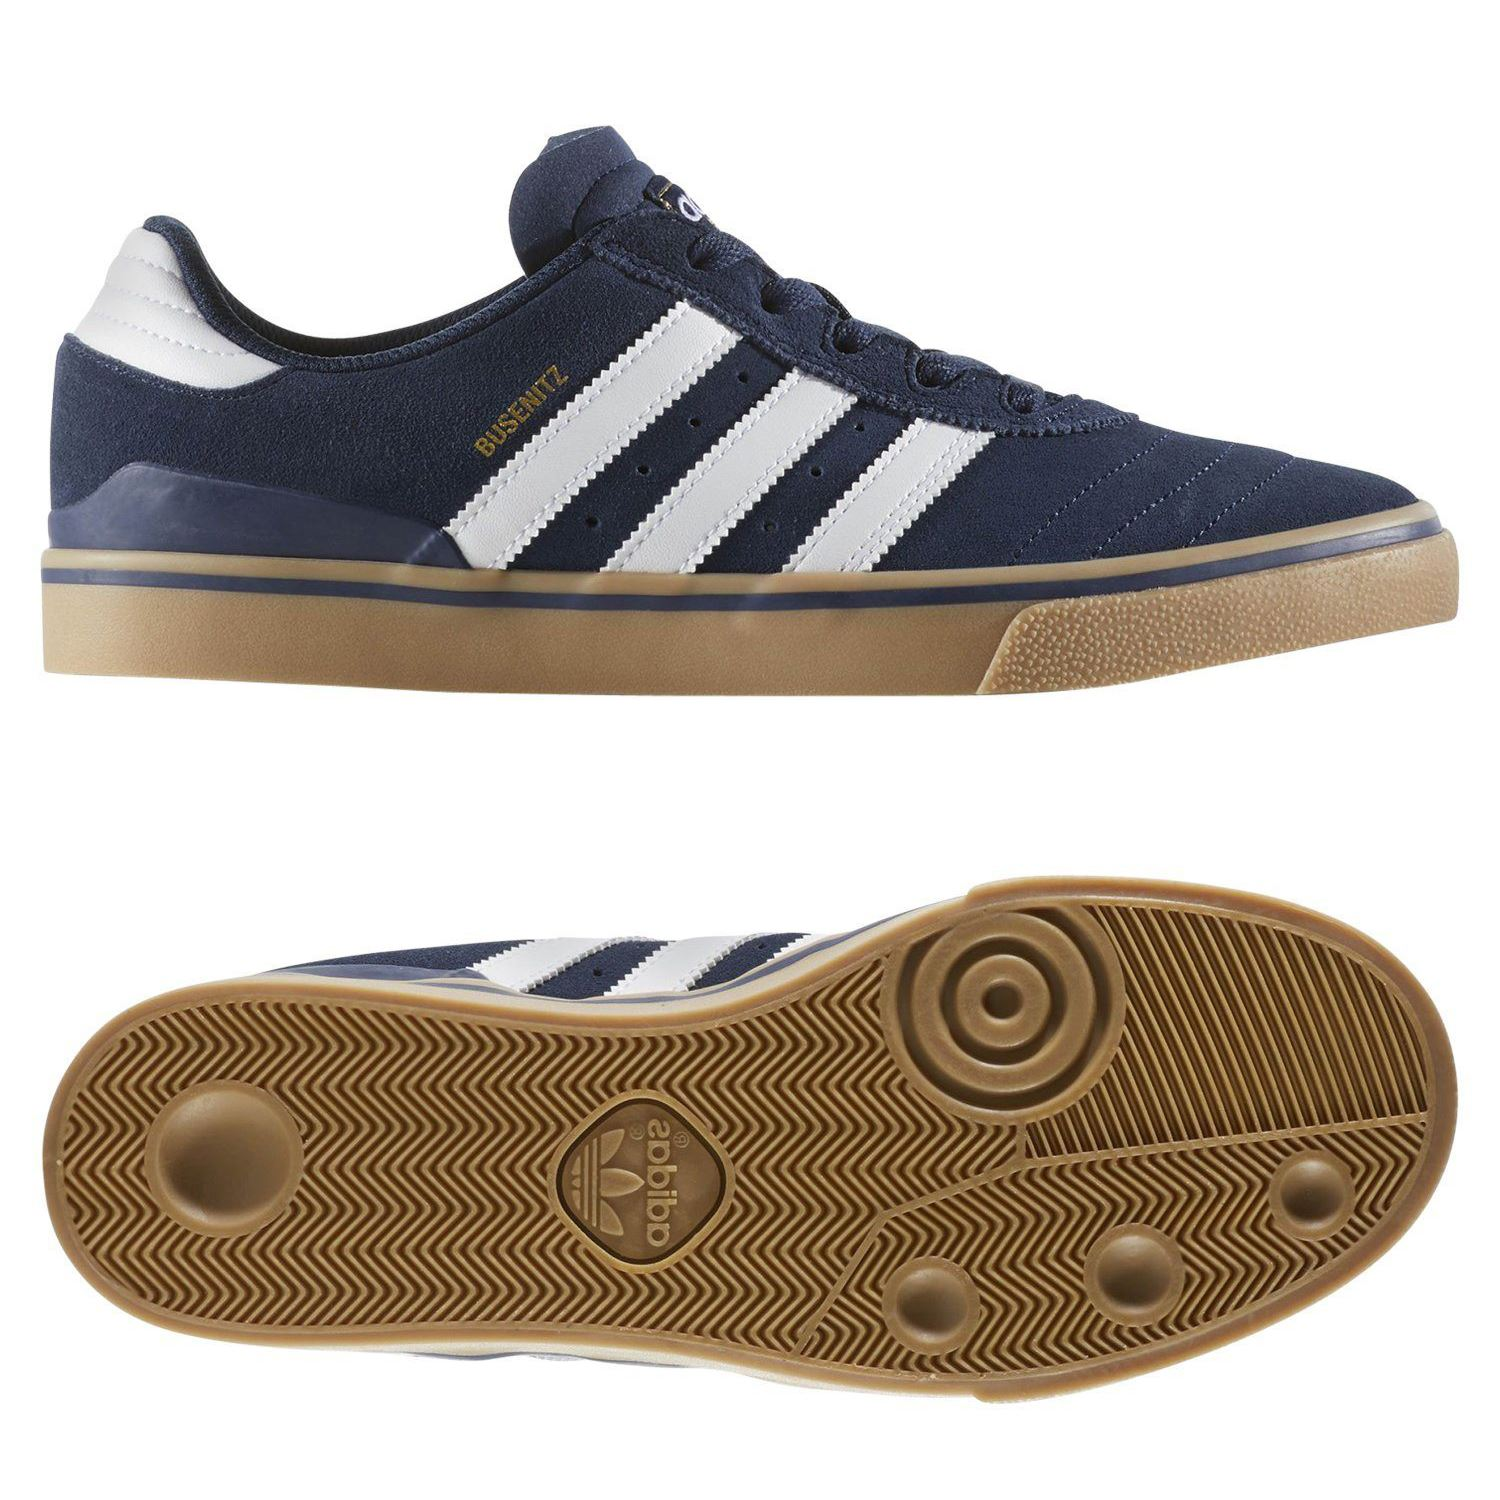 hot sale online b0362 d5af2 Details about adidas ORIGINALS BUSENITZ VULC TRAINERS NAVY MENS  SKATEBOARDING SHOE NEW BNWT